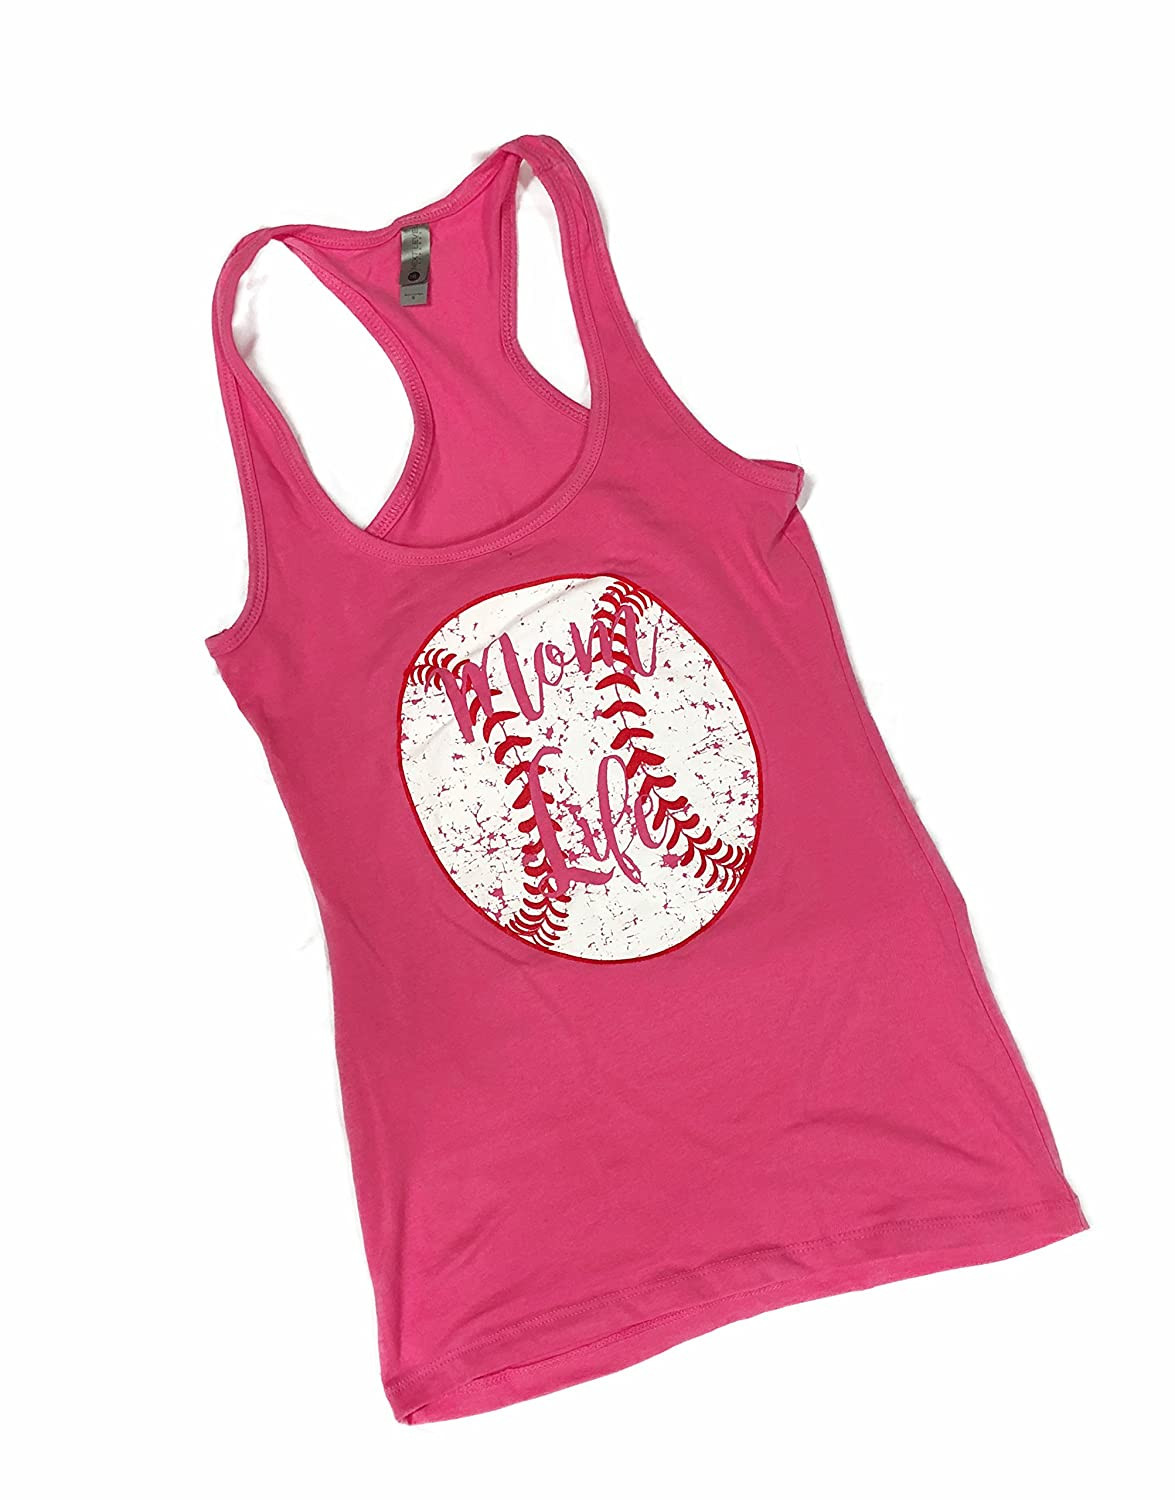 Hot Pink Devious Apparel Mom Life 6633 TM09 Fitted Poly Blend Tank Baseball Softball Team Mom Tee Printed Women's